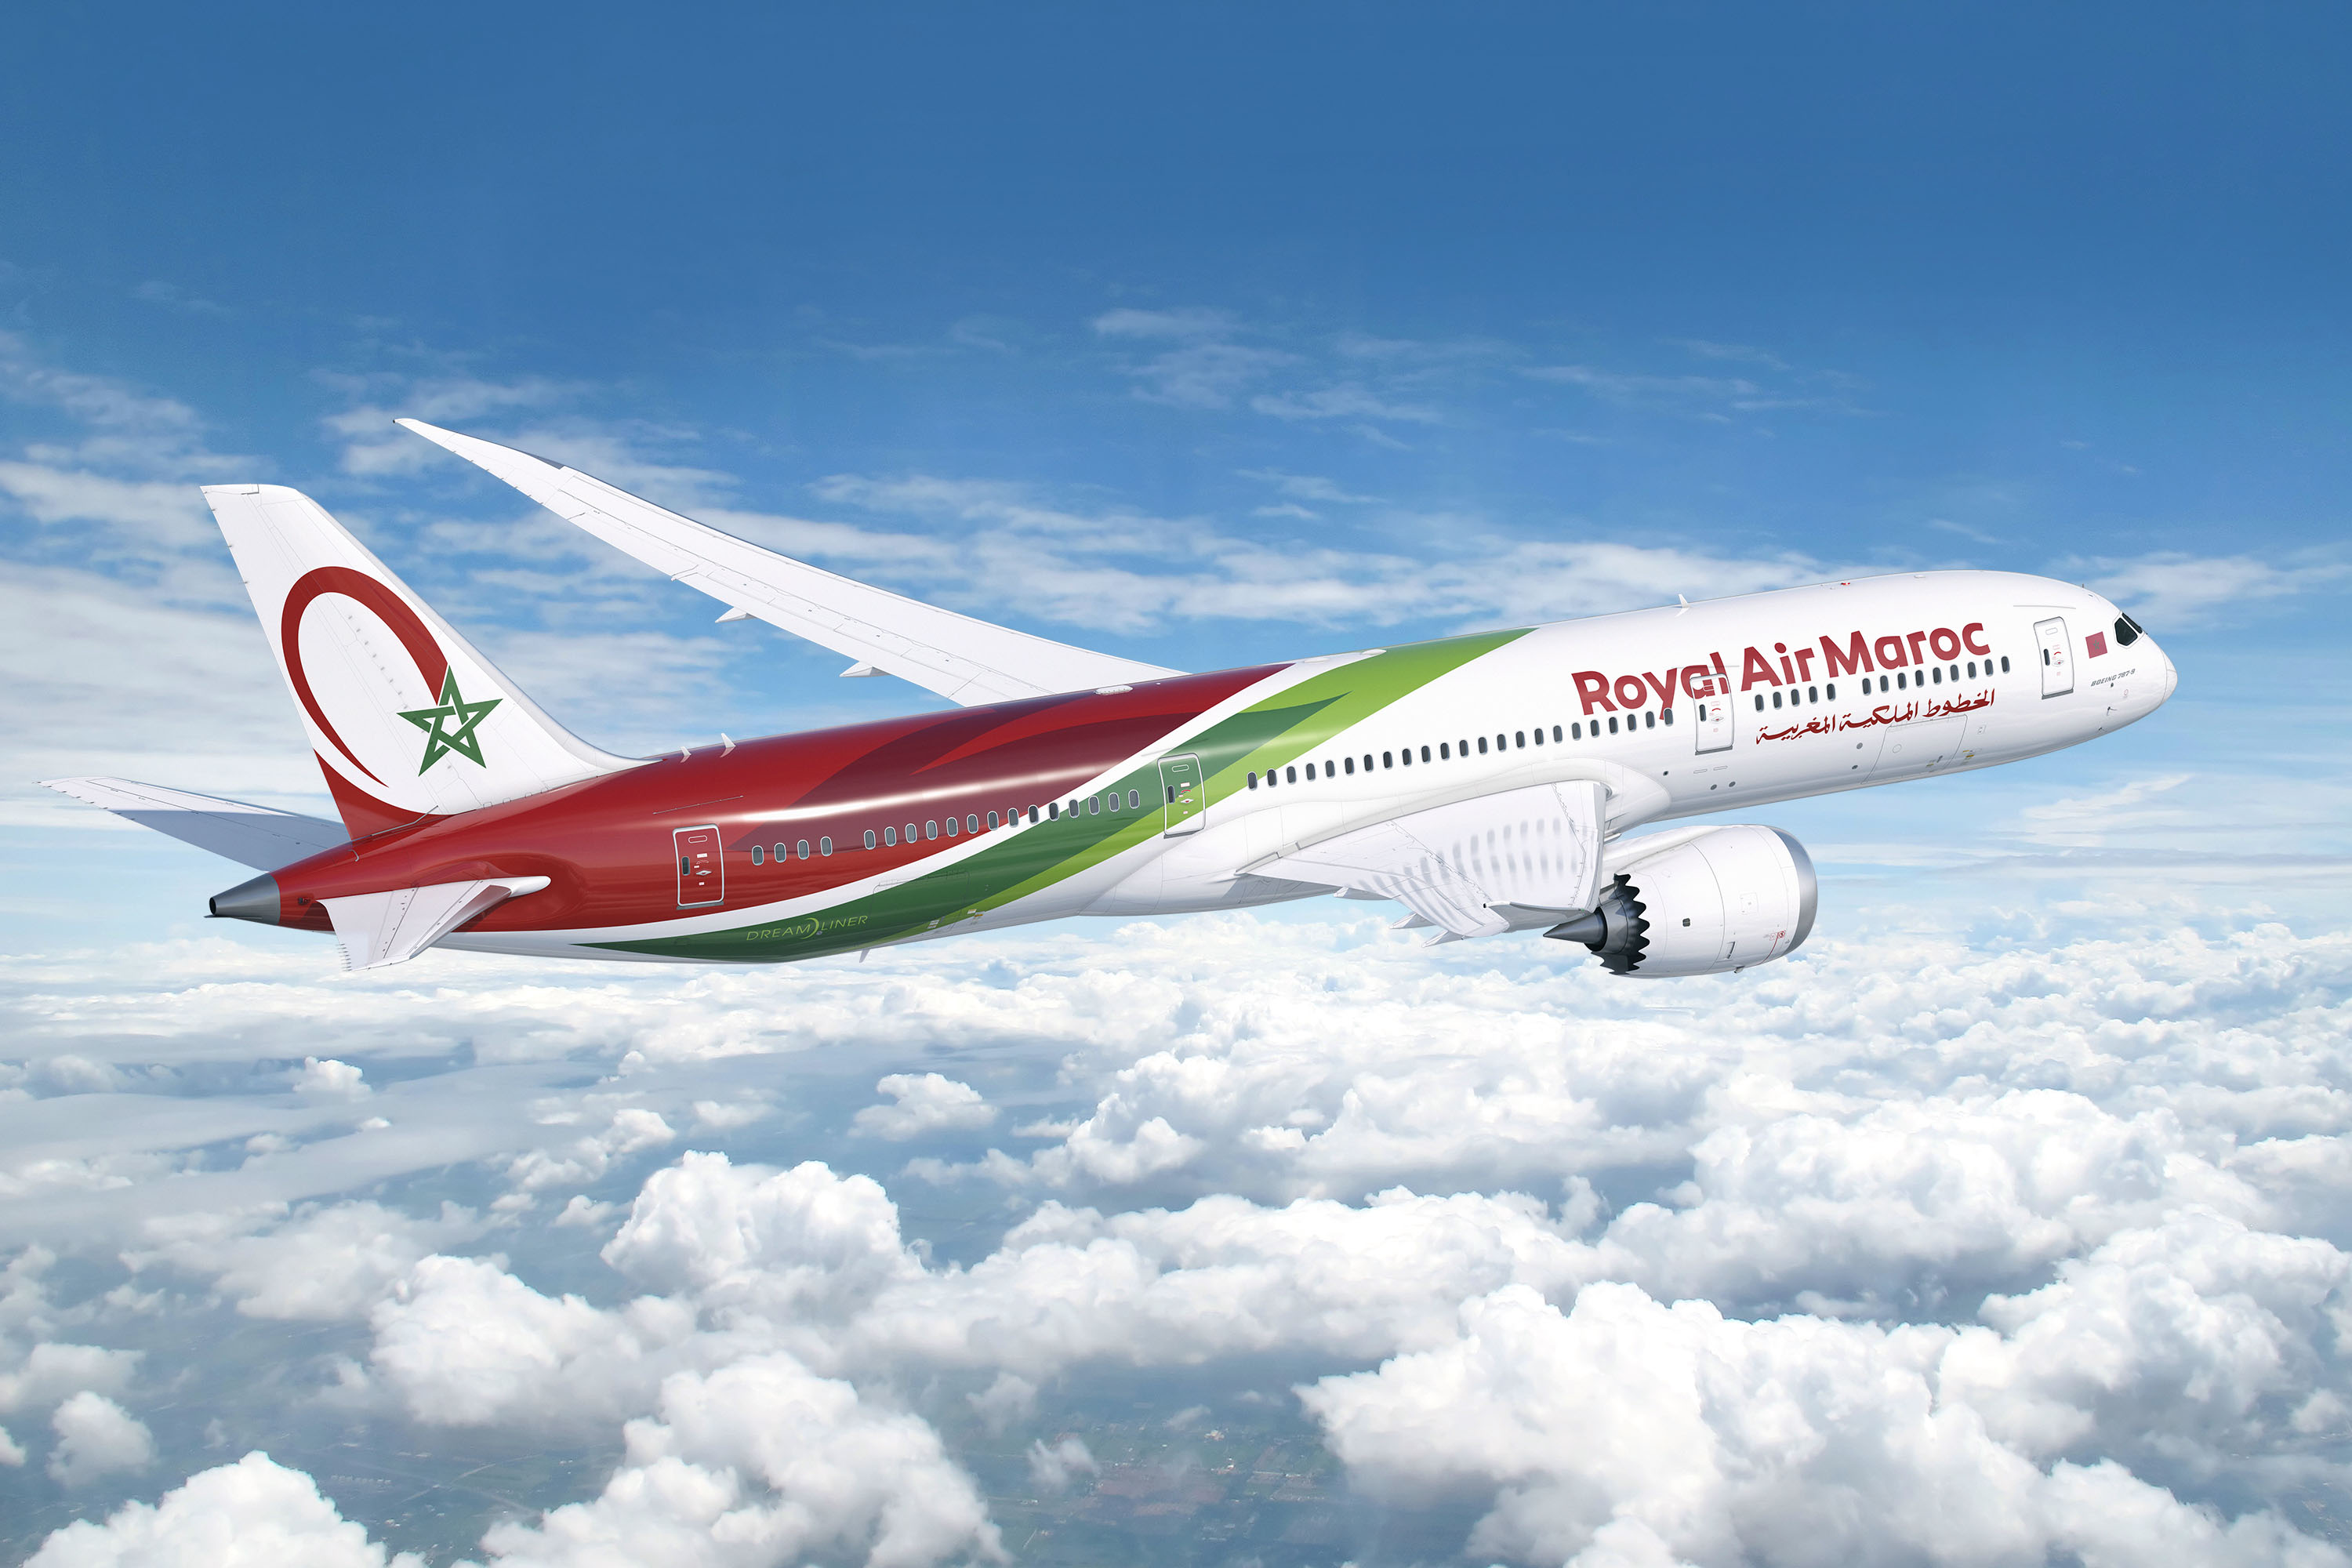 Safar Flyer Blue advantages on Royal Air Maroc flights